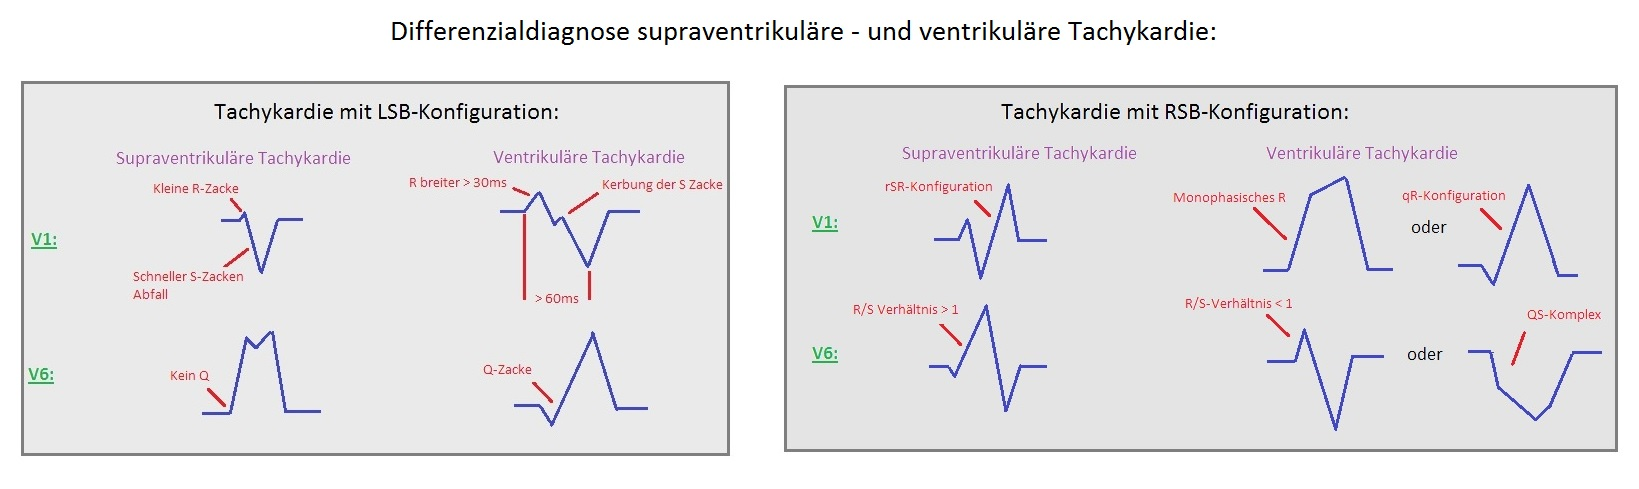 265 Differenzialdiagnose SVT VT